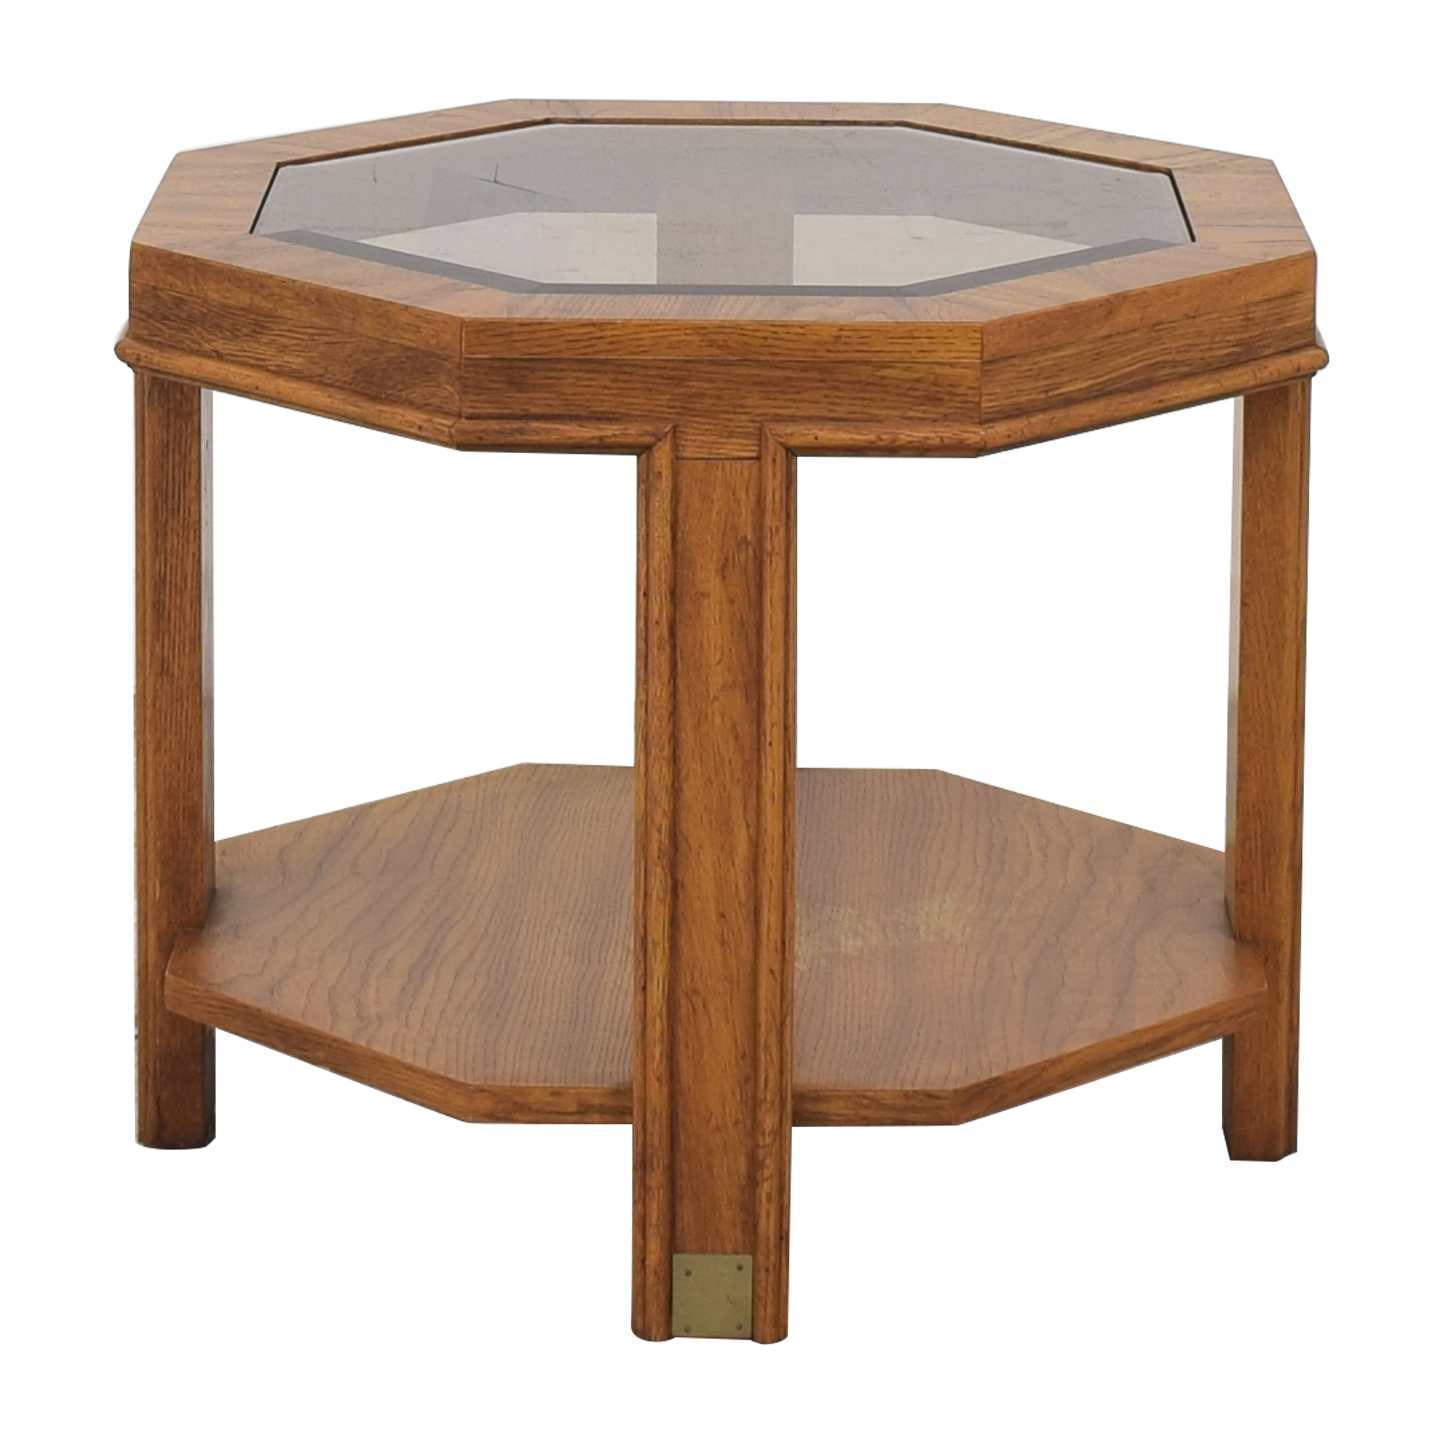 Drexel Heritage Drexel Heritage Hexagon Side Table pa